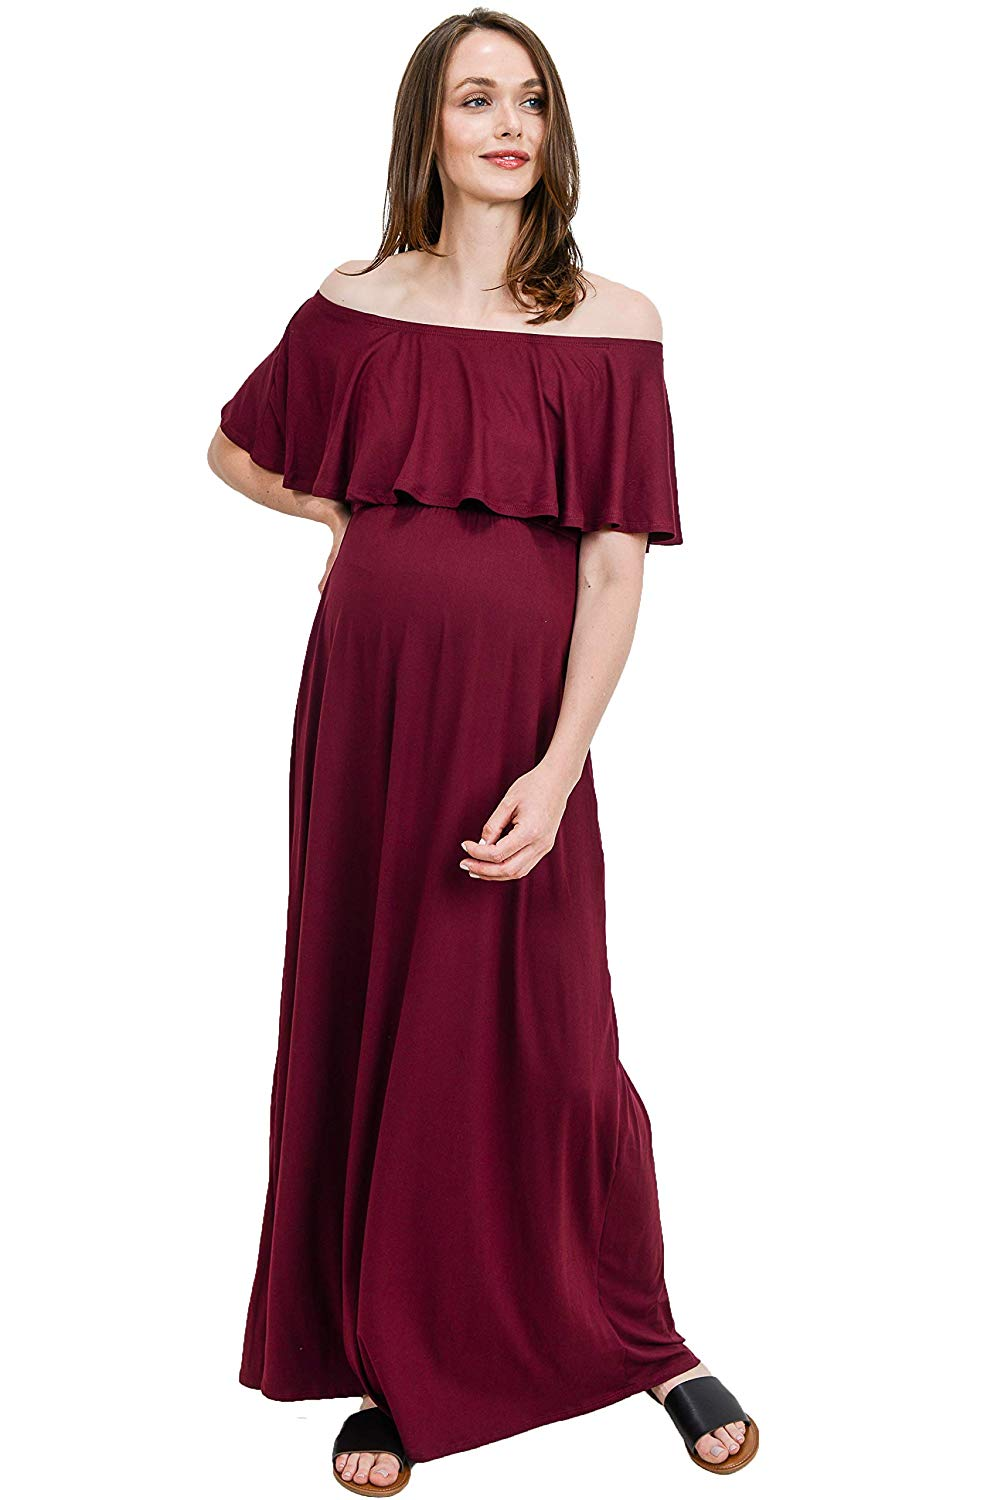 Burgundy Red Maternity Maxi Dress